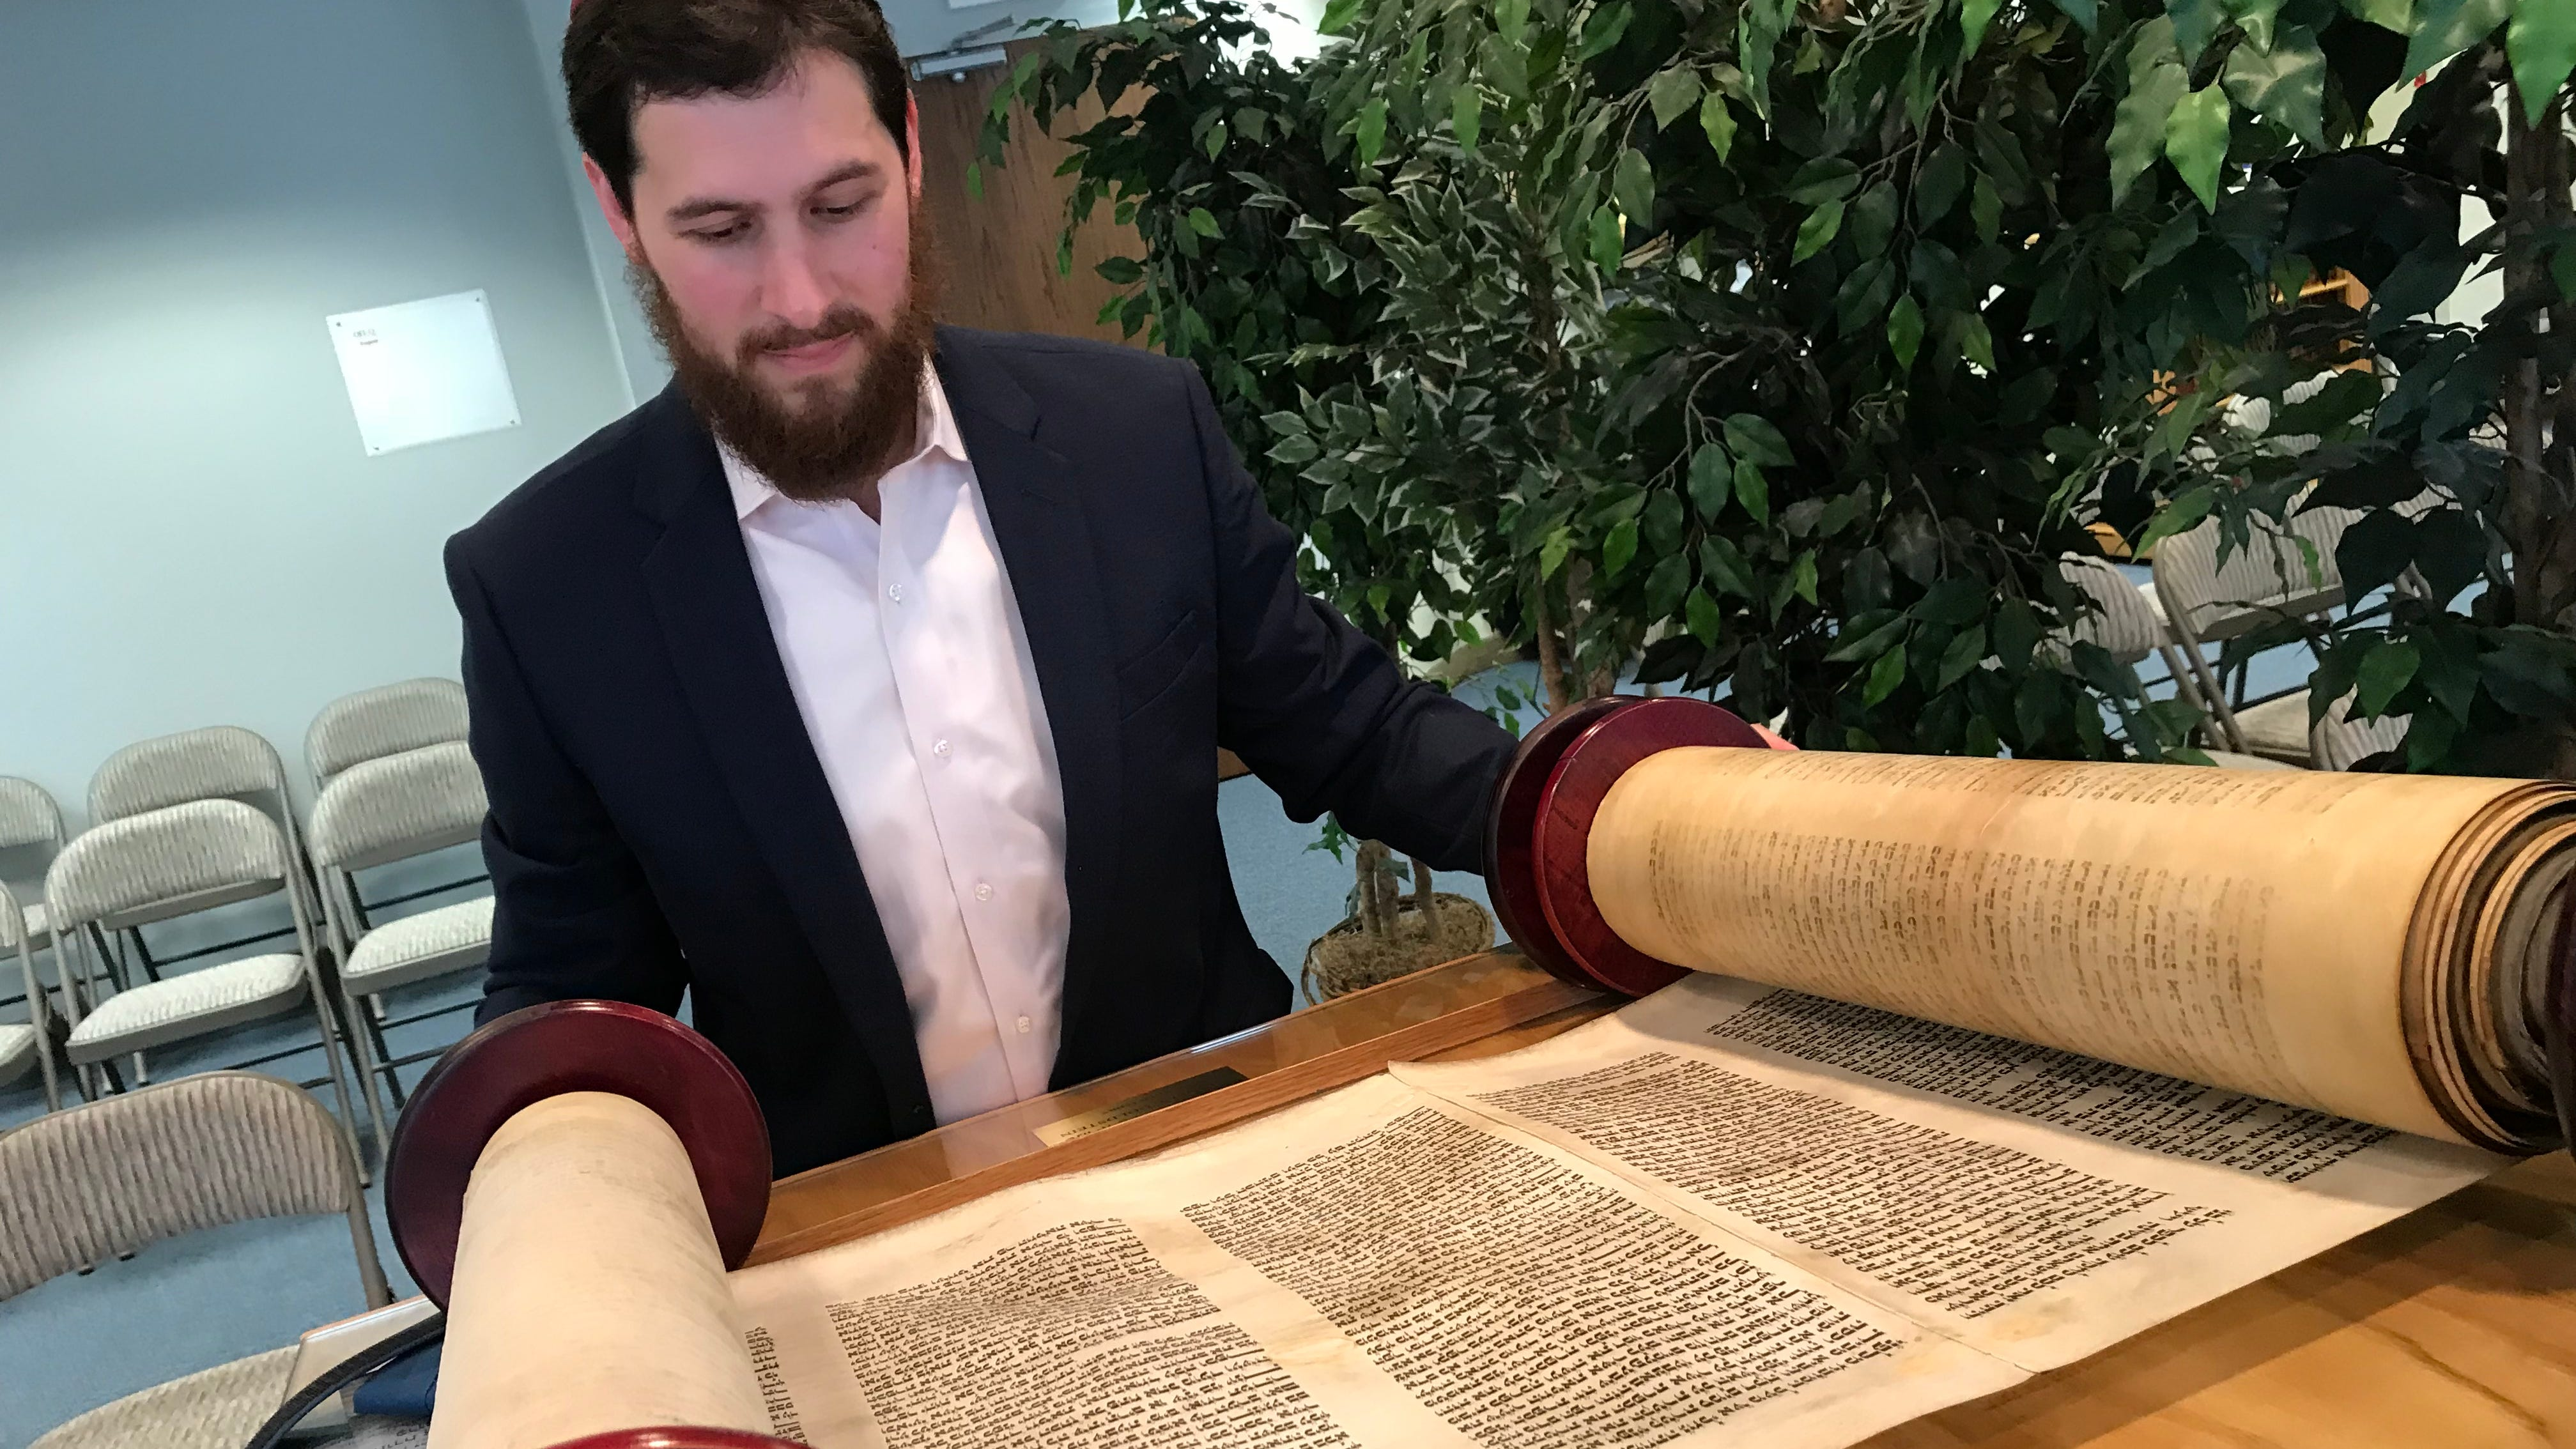 Torah saved from Nazi destruction by 14-year-old will be in NJ for Yom Kippur